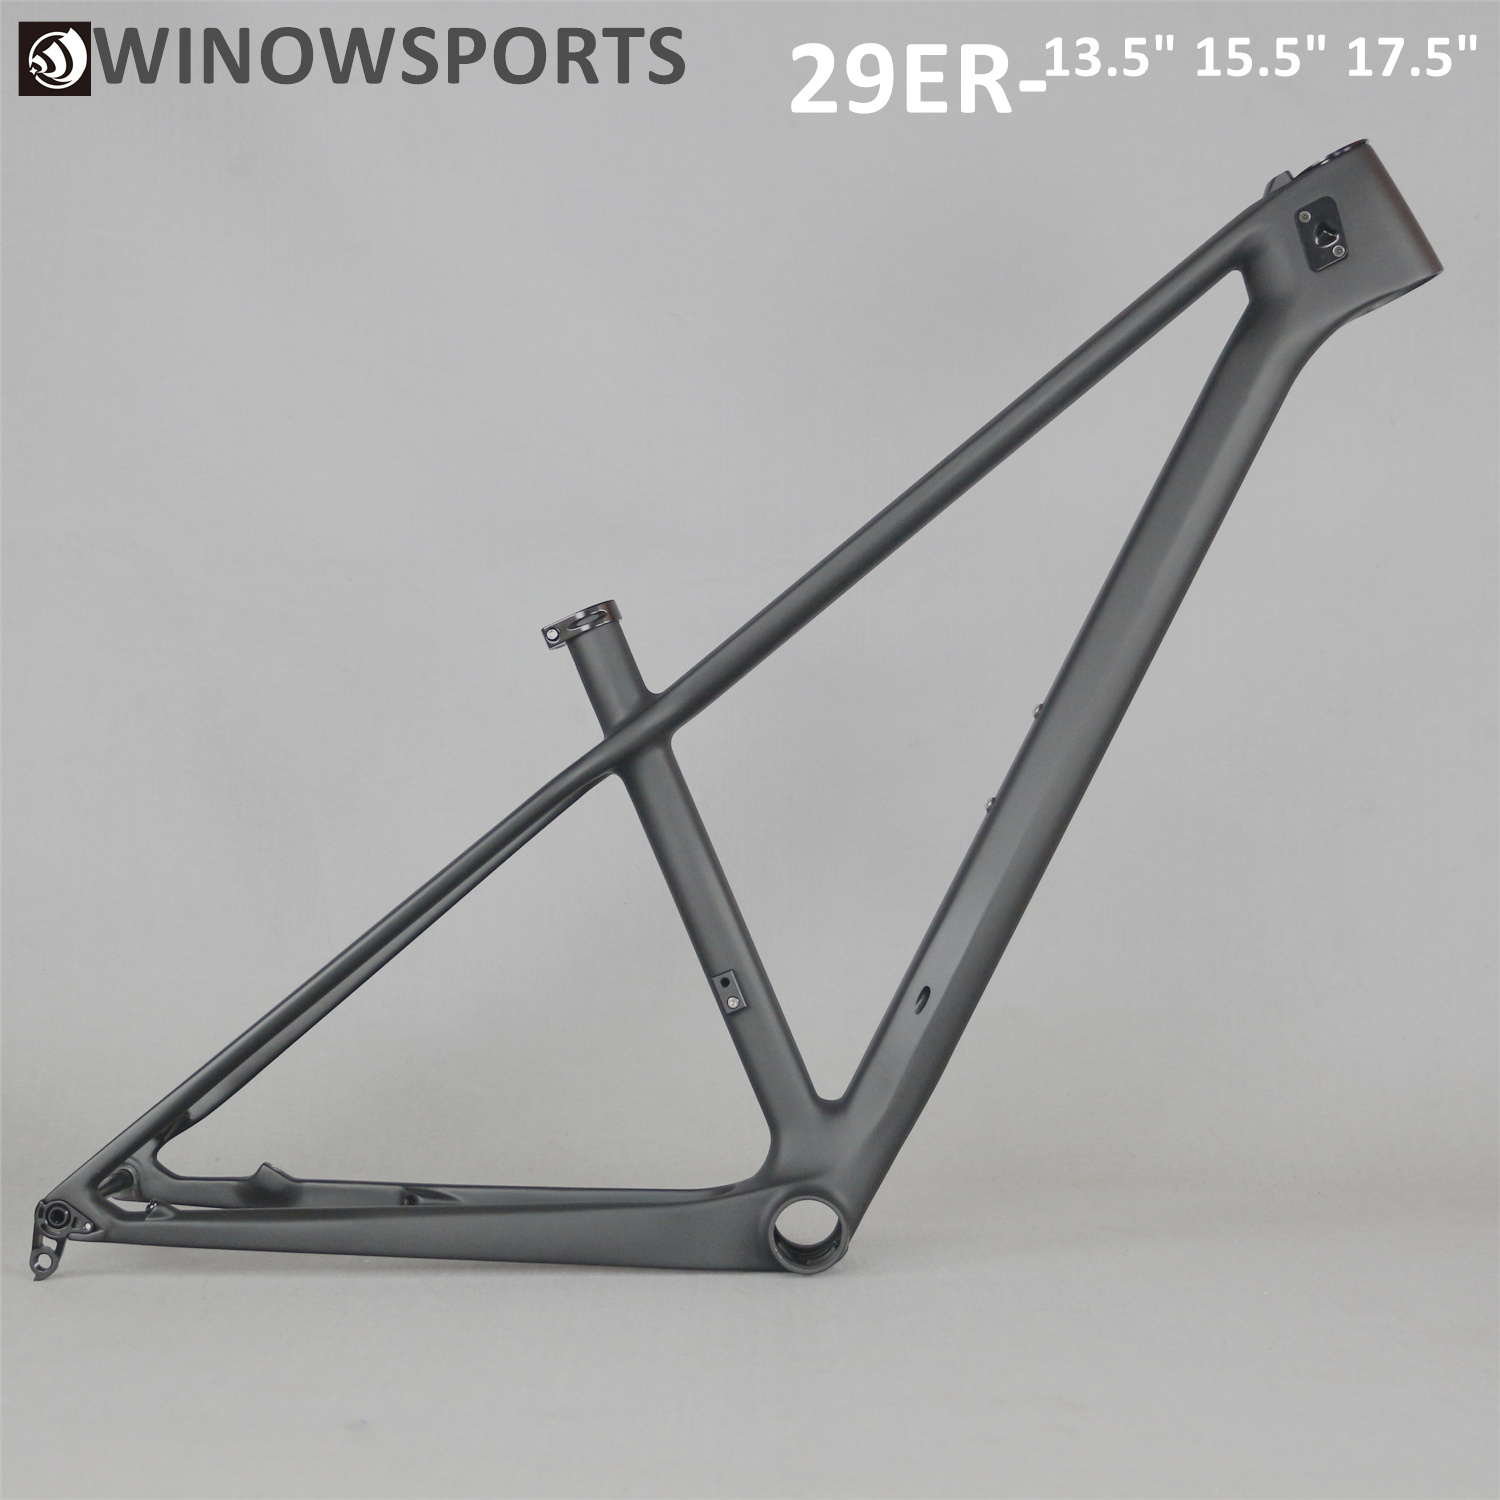 2019 Nwe 29er Racing Carbon Mtb Bicycle Frame T800 Carbon Mtb Frame Bike Carbon Frame UD Matt Accept Customized Painting